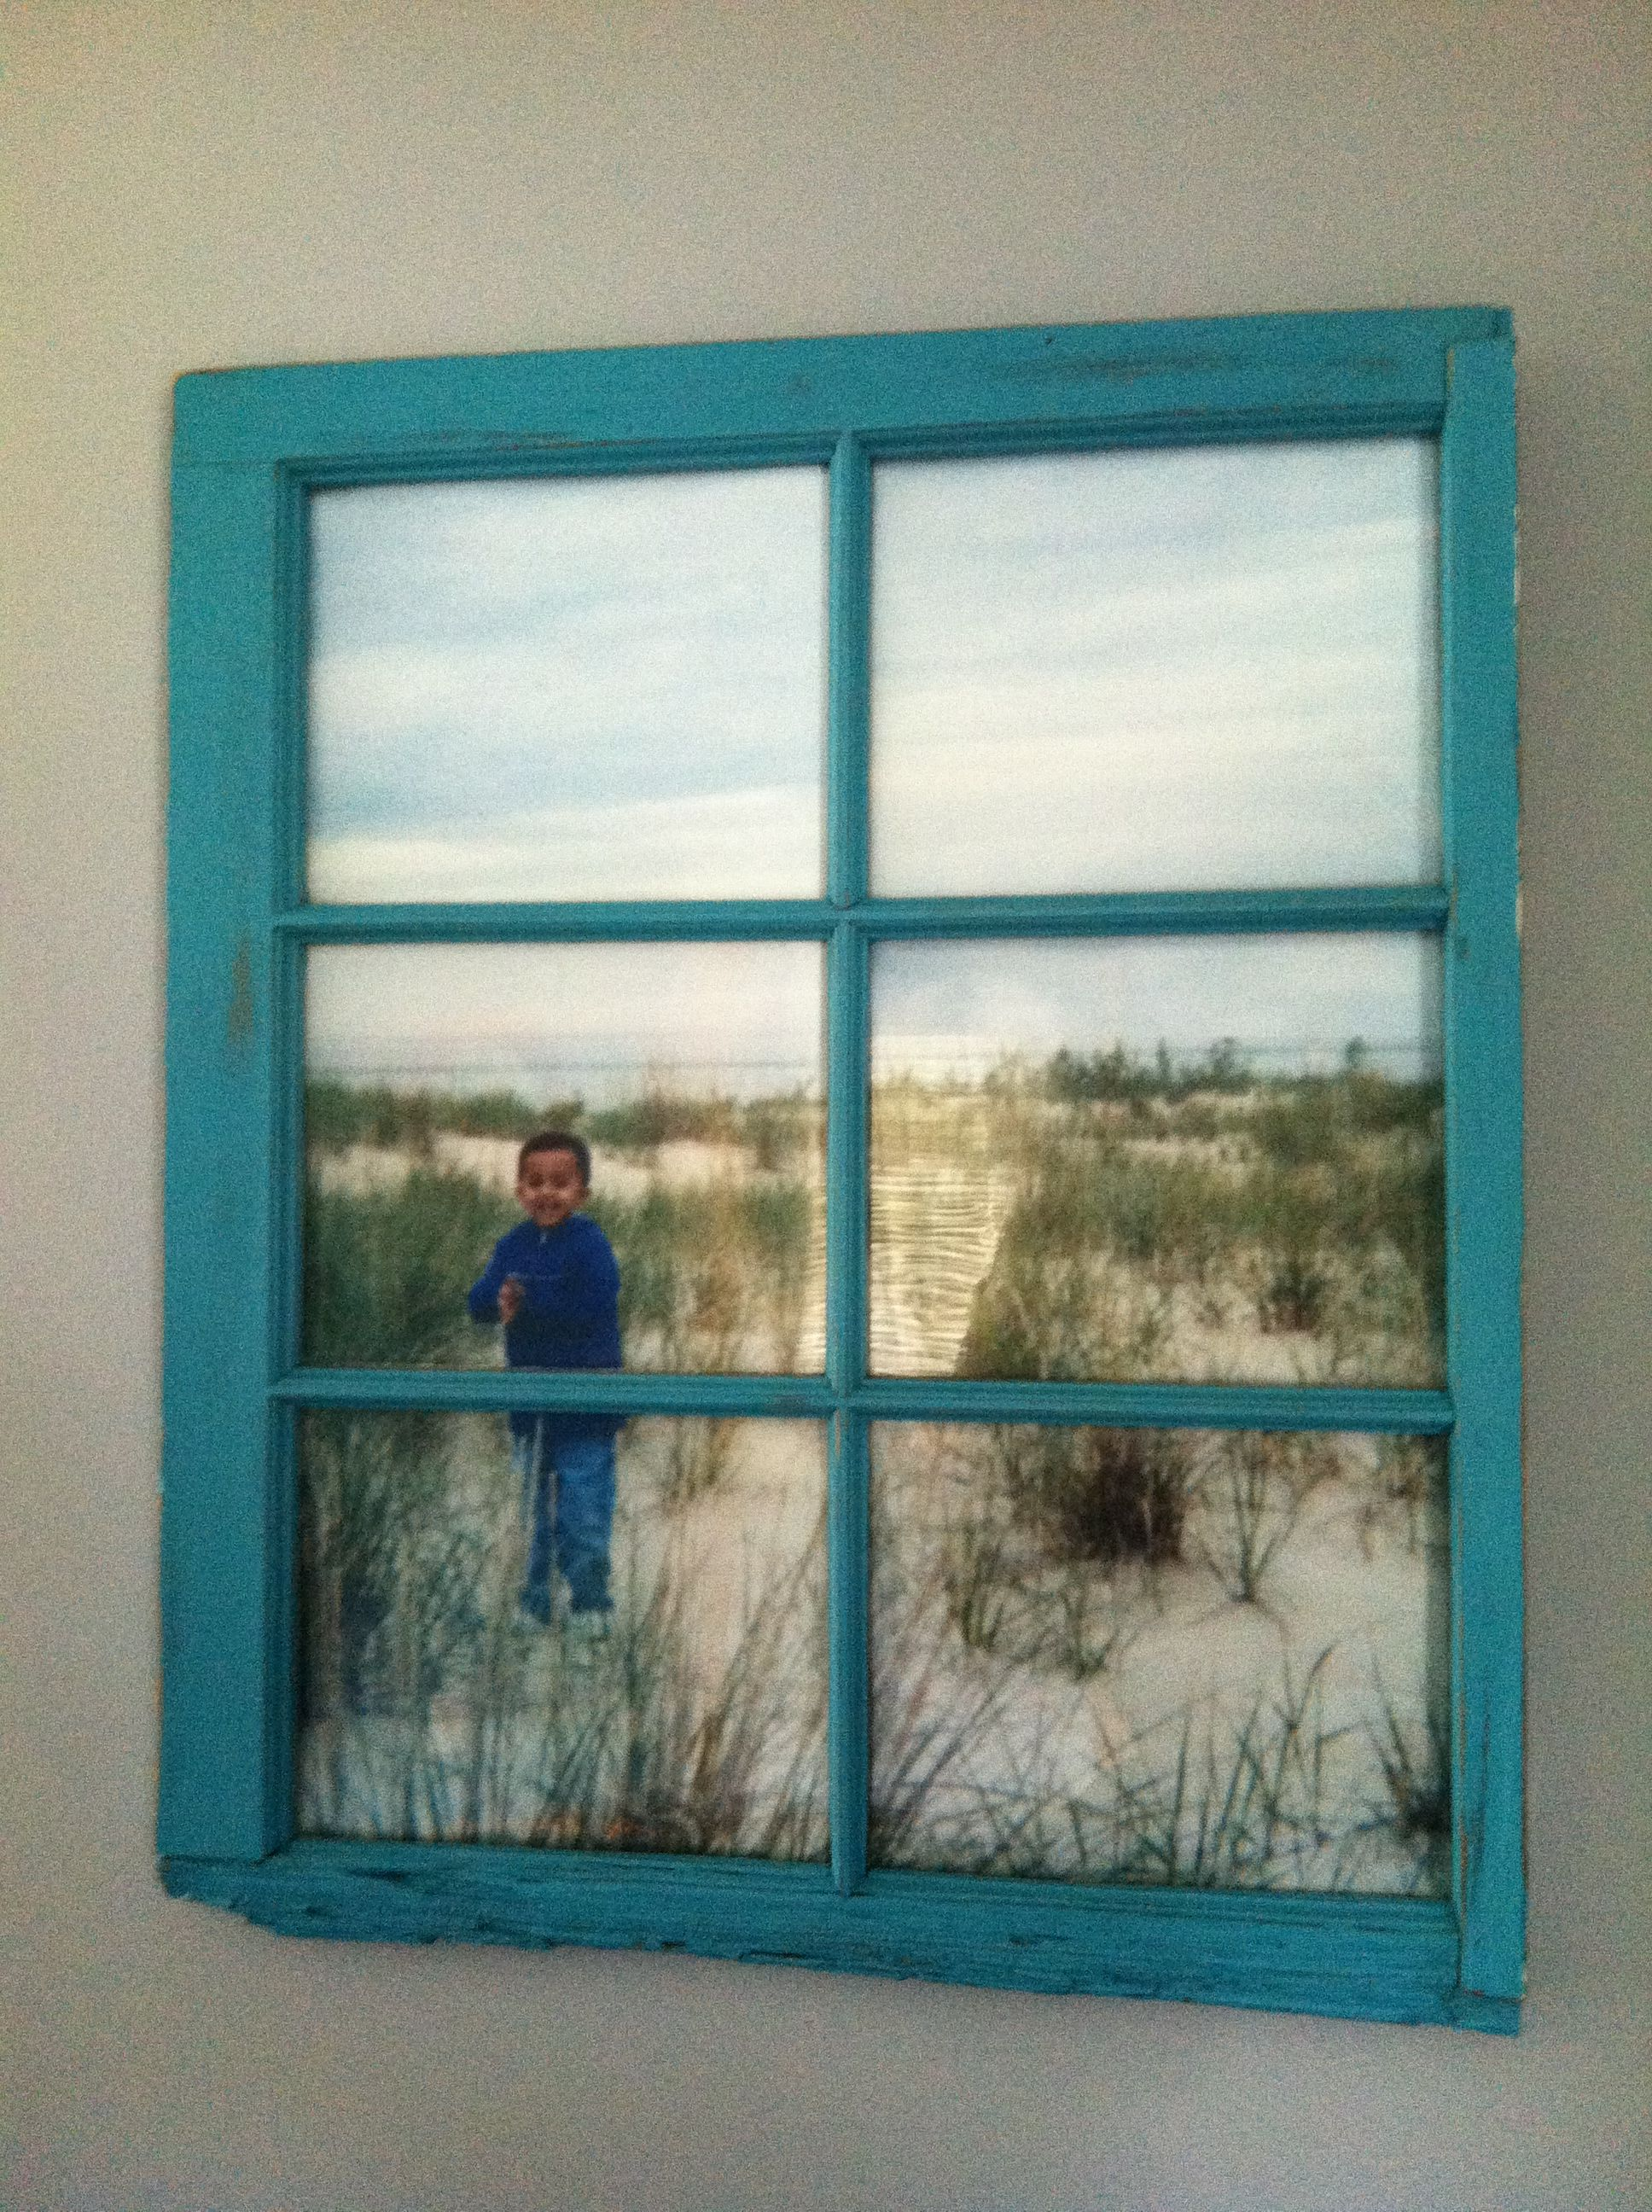 Do it yourself diy ideas pinterest window craft and frames ideas cherished photo plus old window i have a window waiting for its project solutioingenieria Gallery